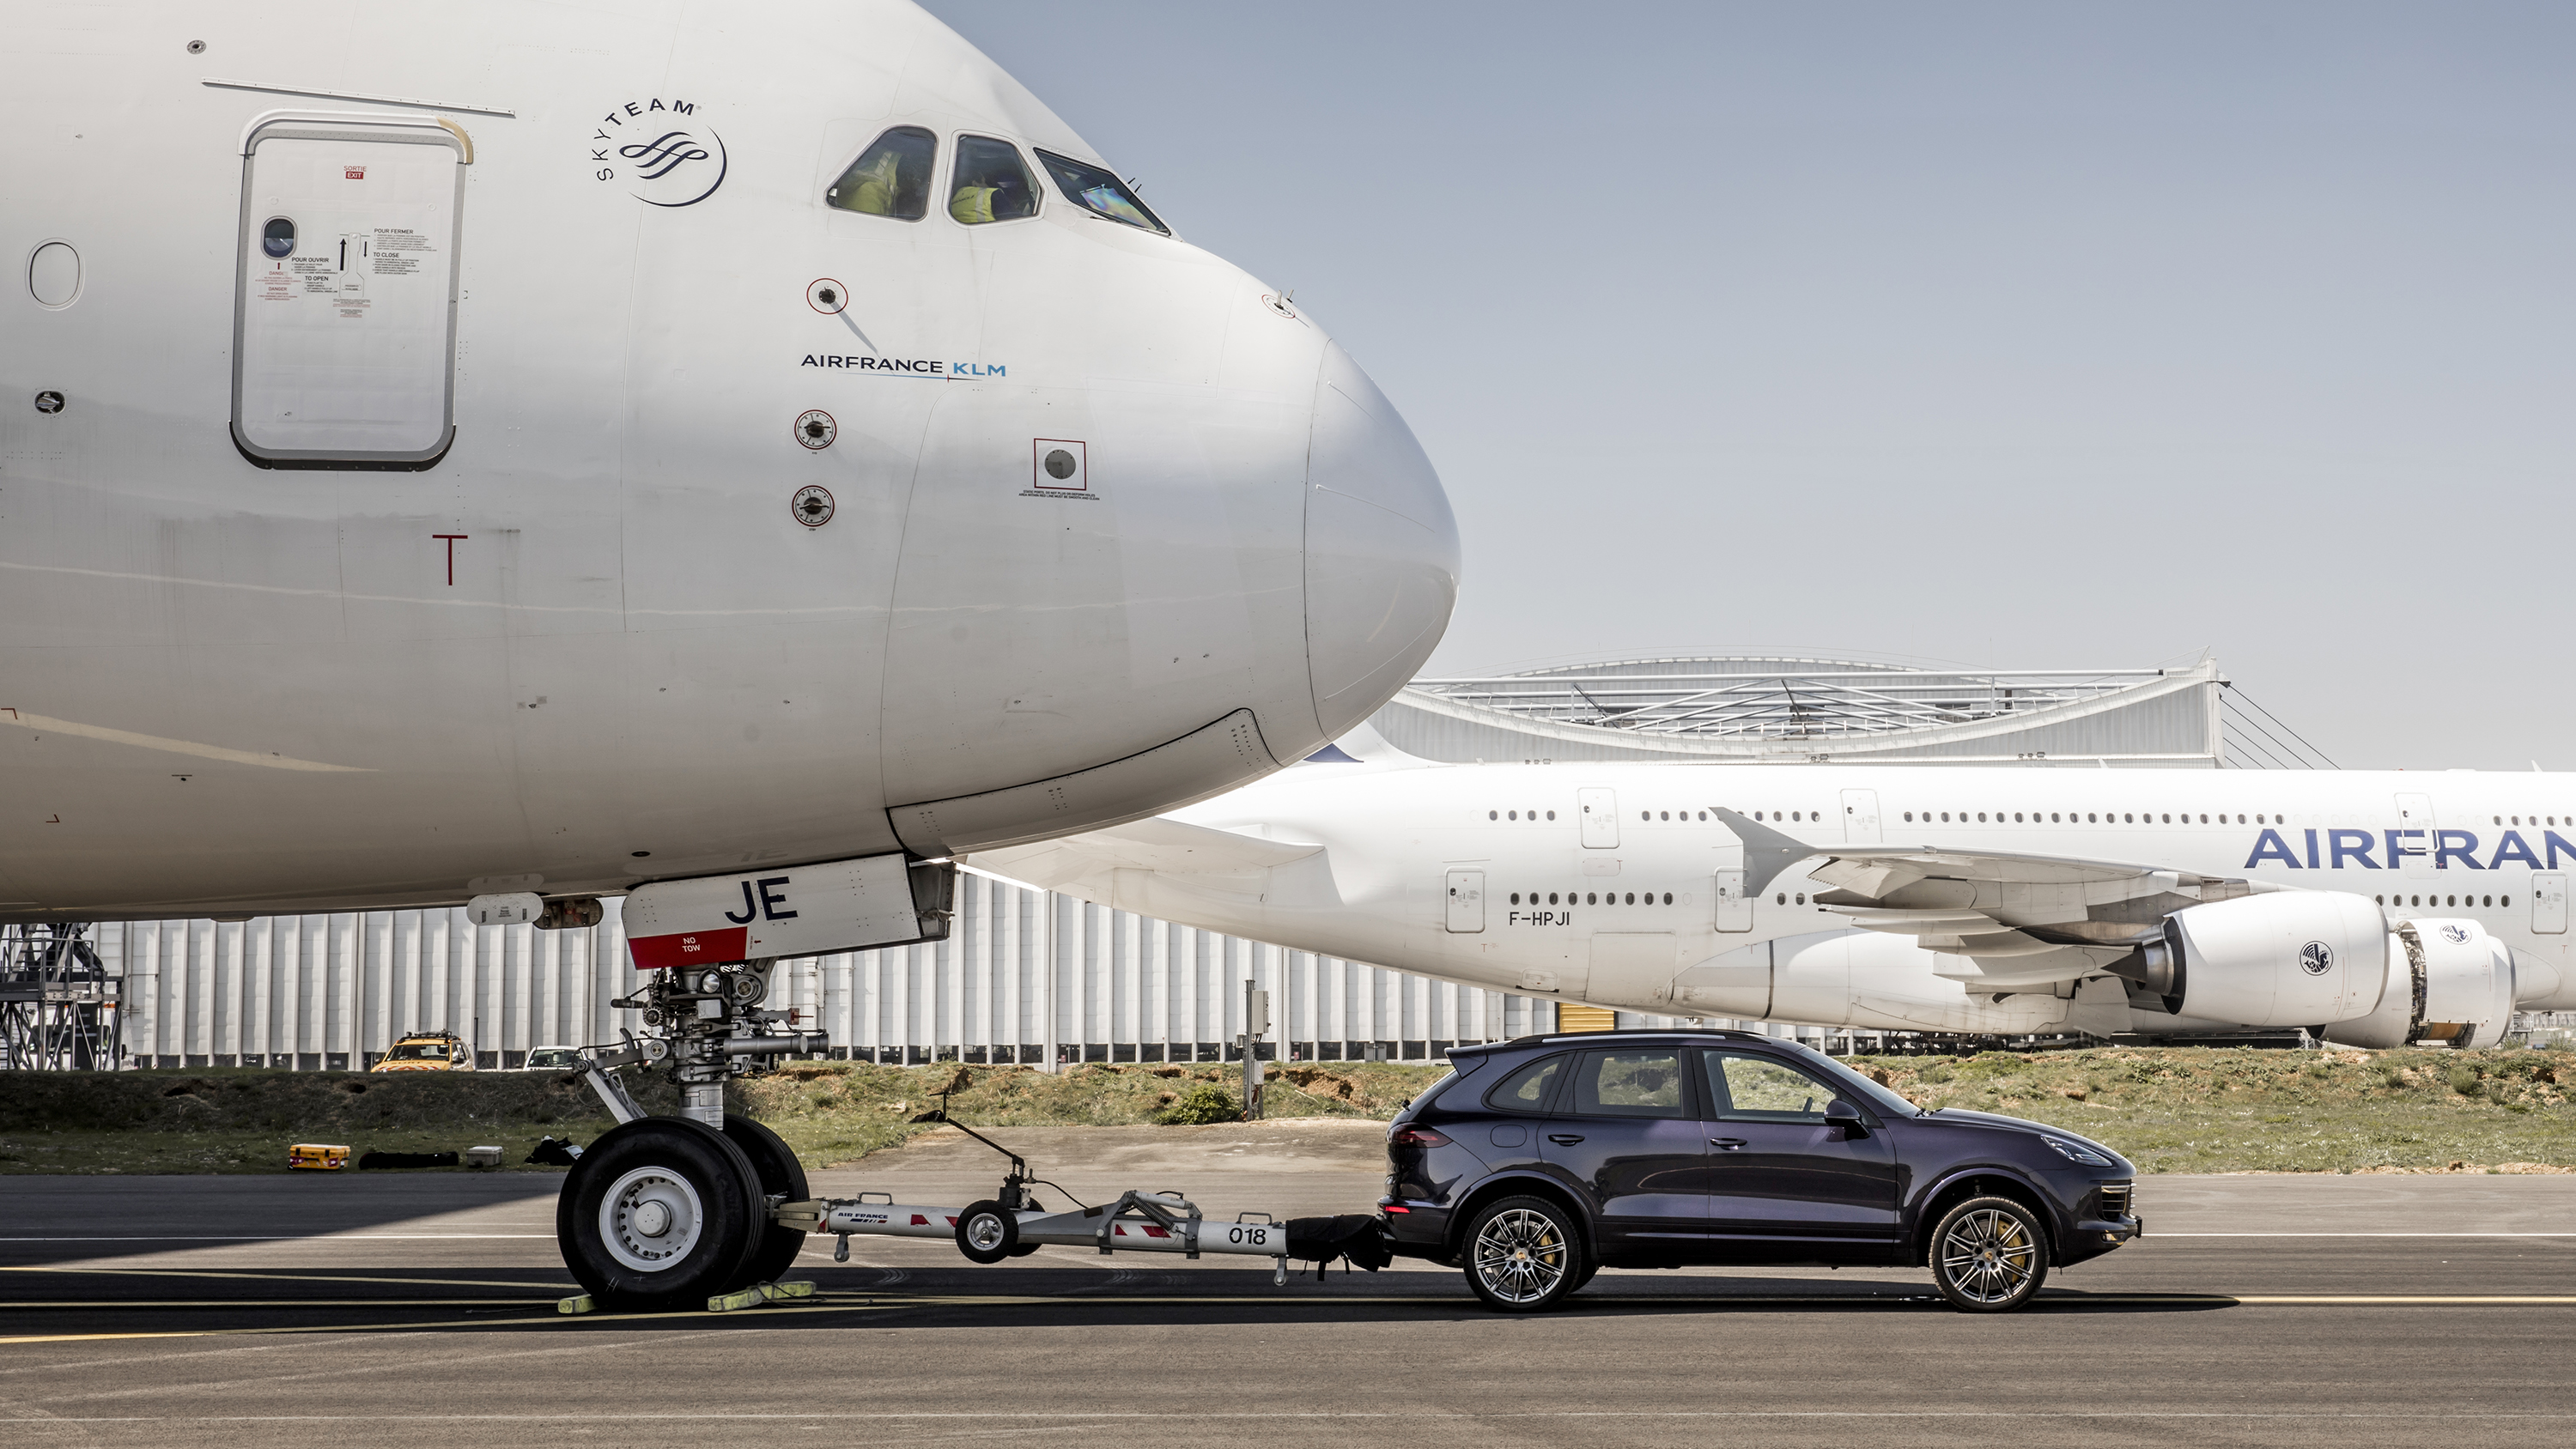 Porsche Cayenne towing Airbus A380 side